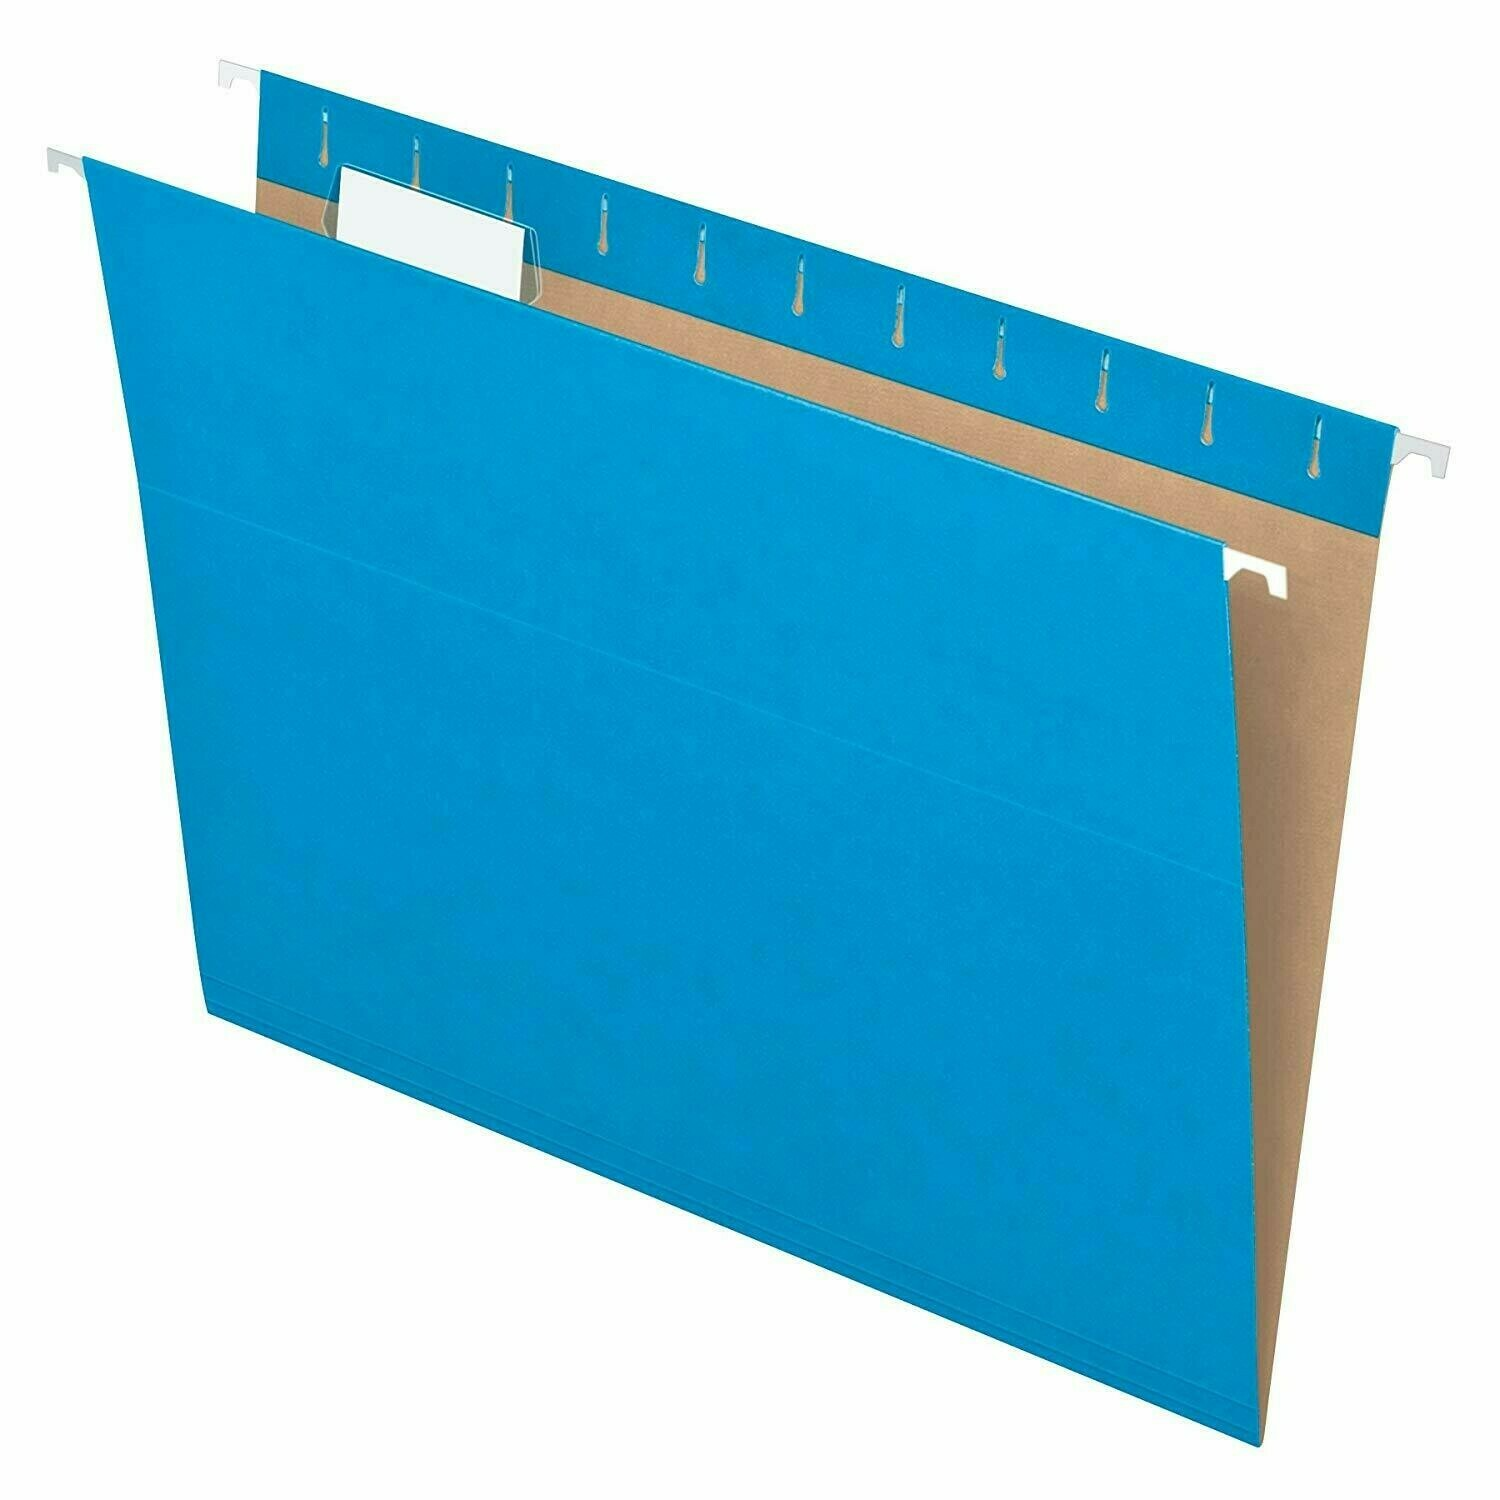 Pendaflex / Hanging File Folders Recycled, Letter Size, 1/5 Cut, Pk-25